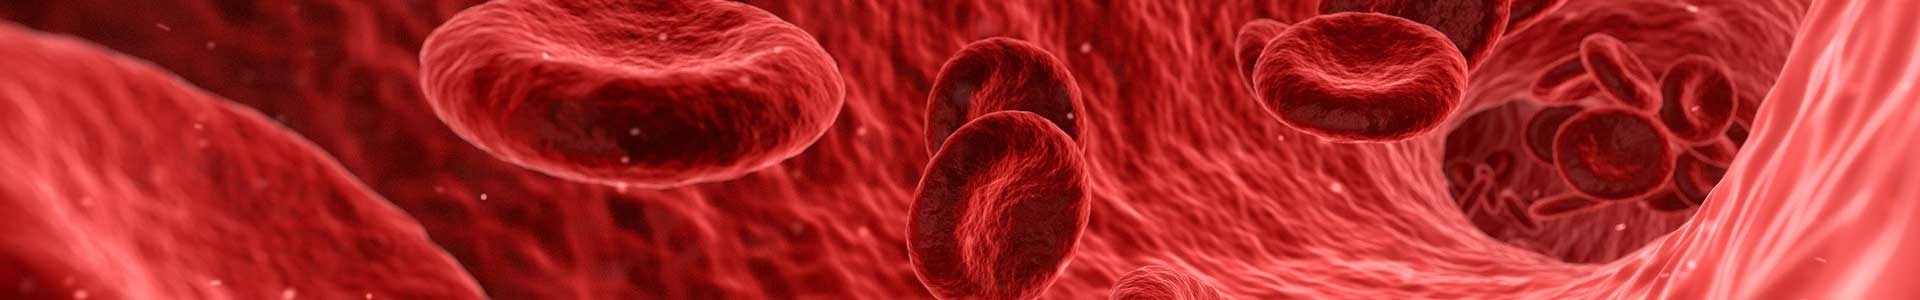 Information About Other Platelet Disorders